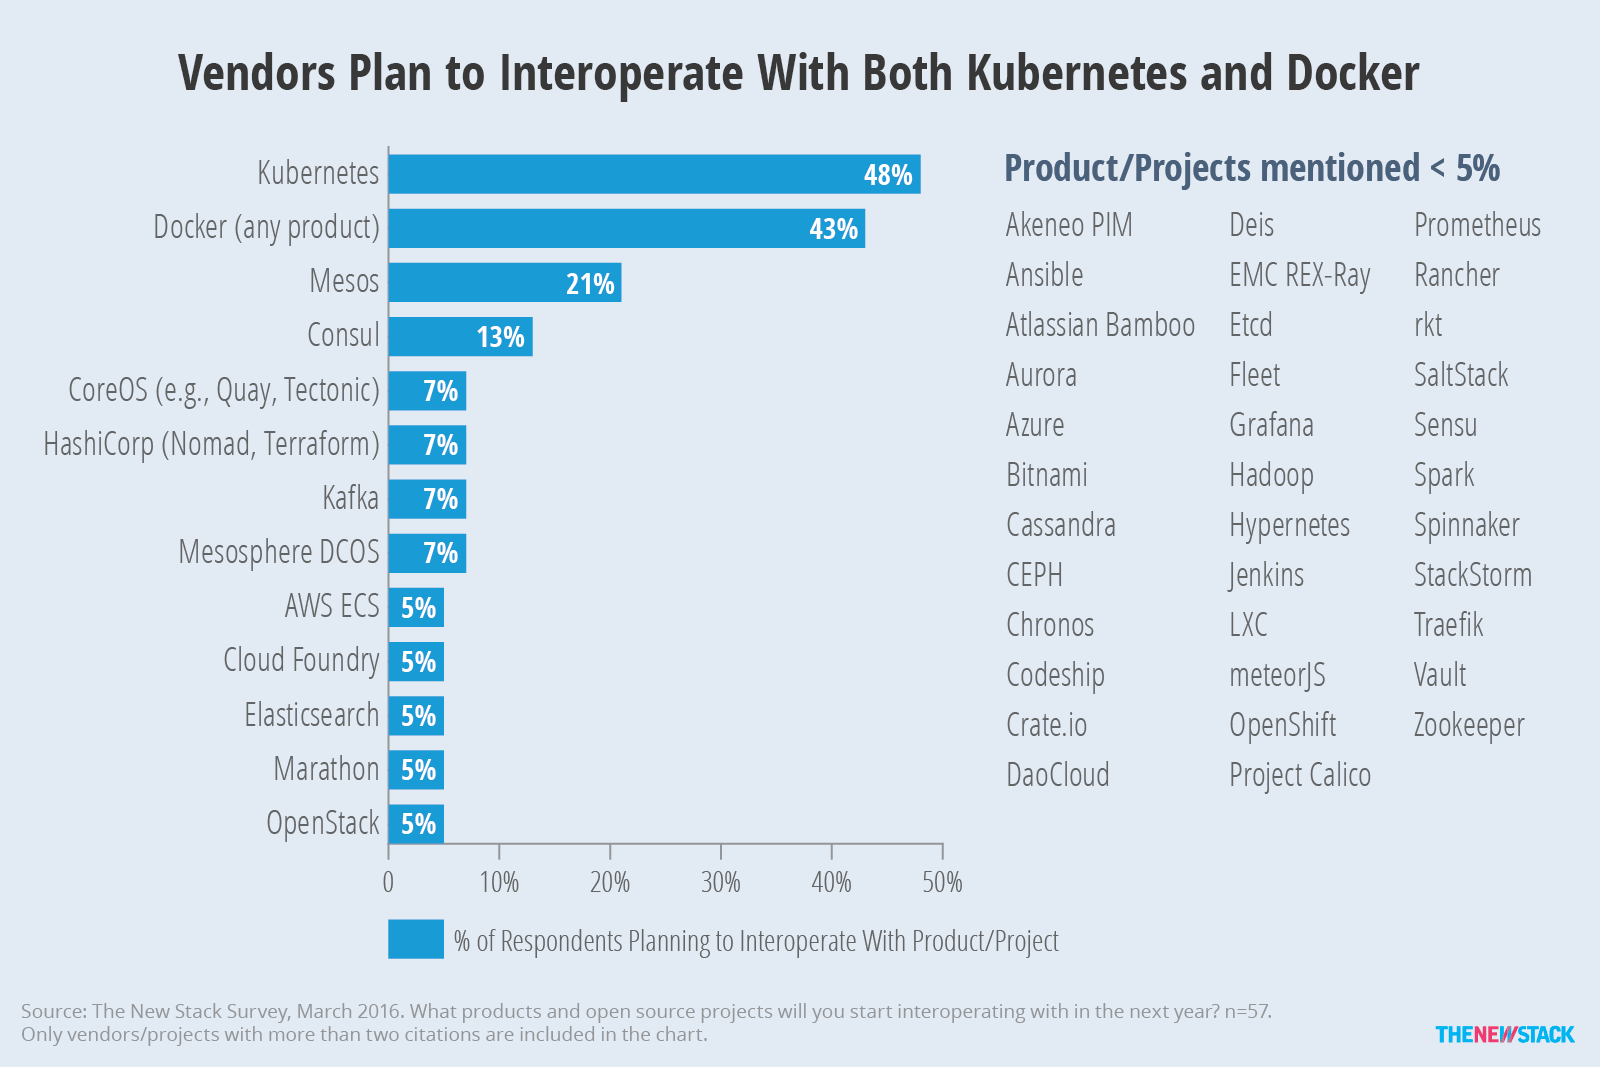 chart_vendors-plan-to-interoperate-with-both-kubernetes-and-docker